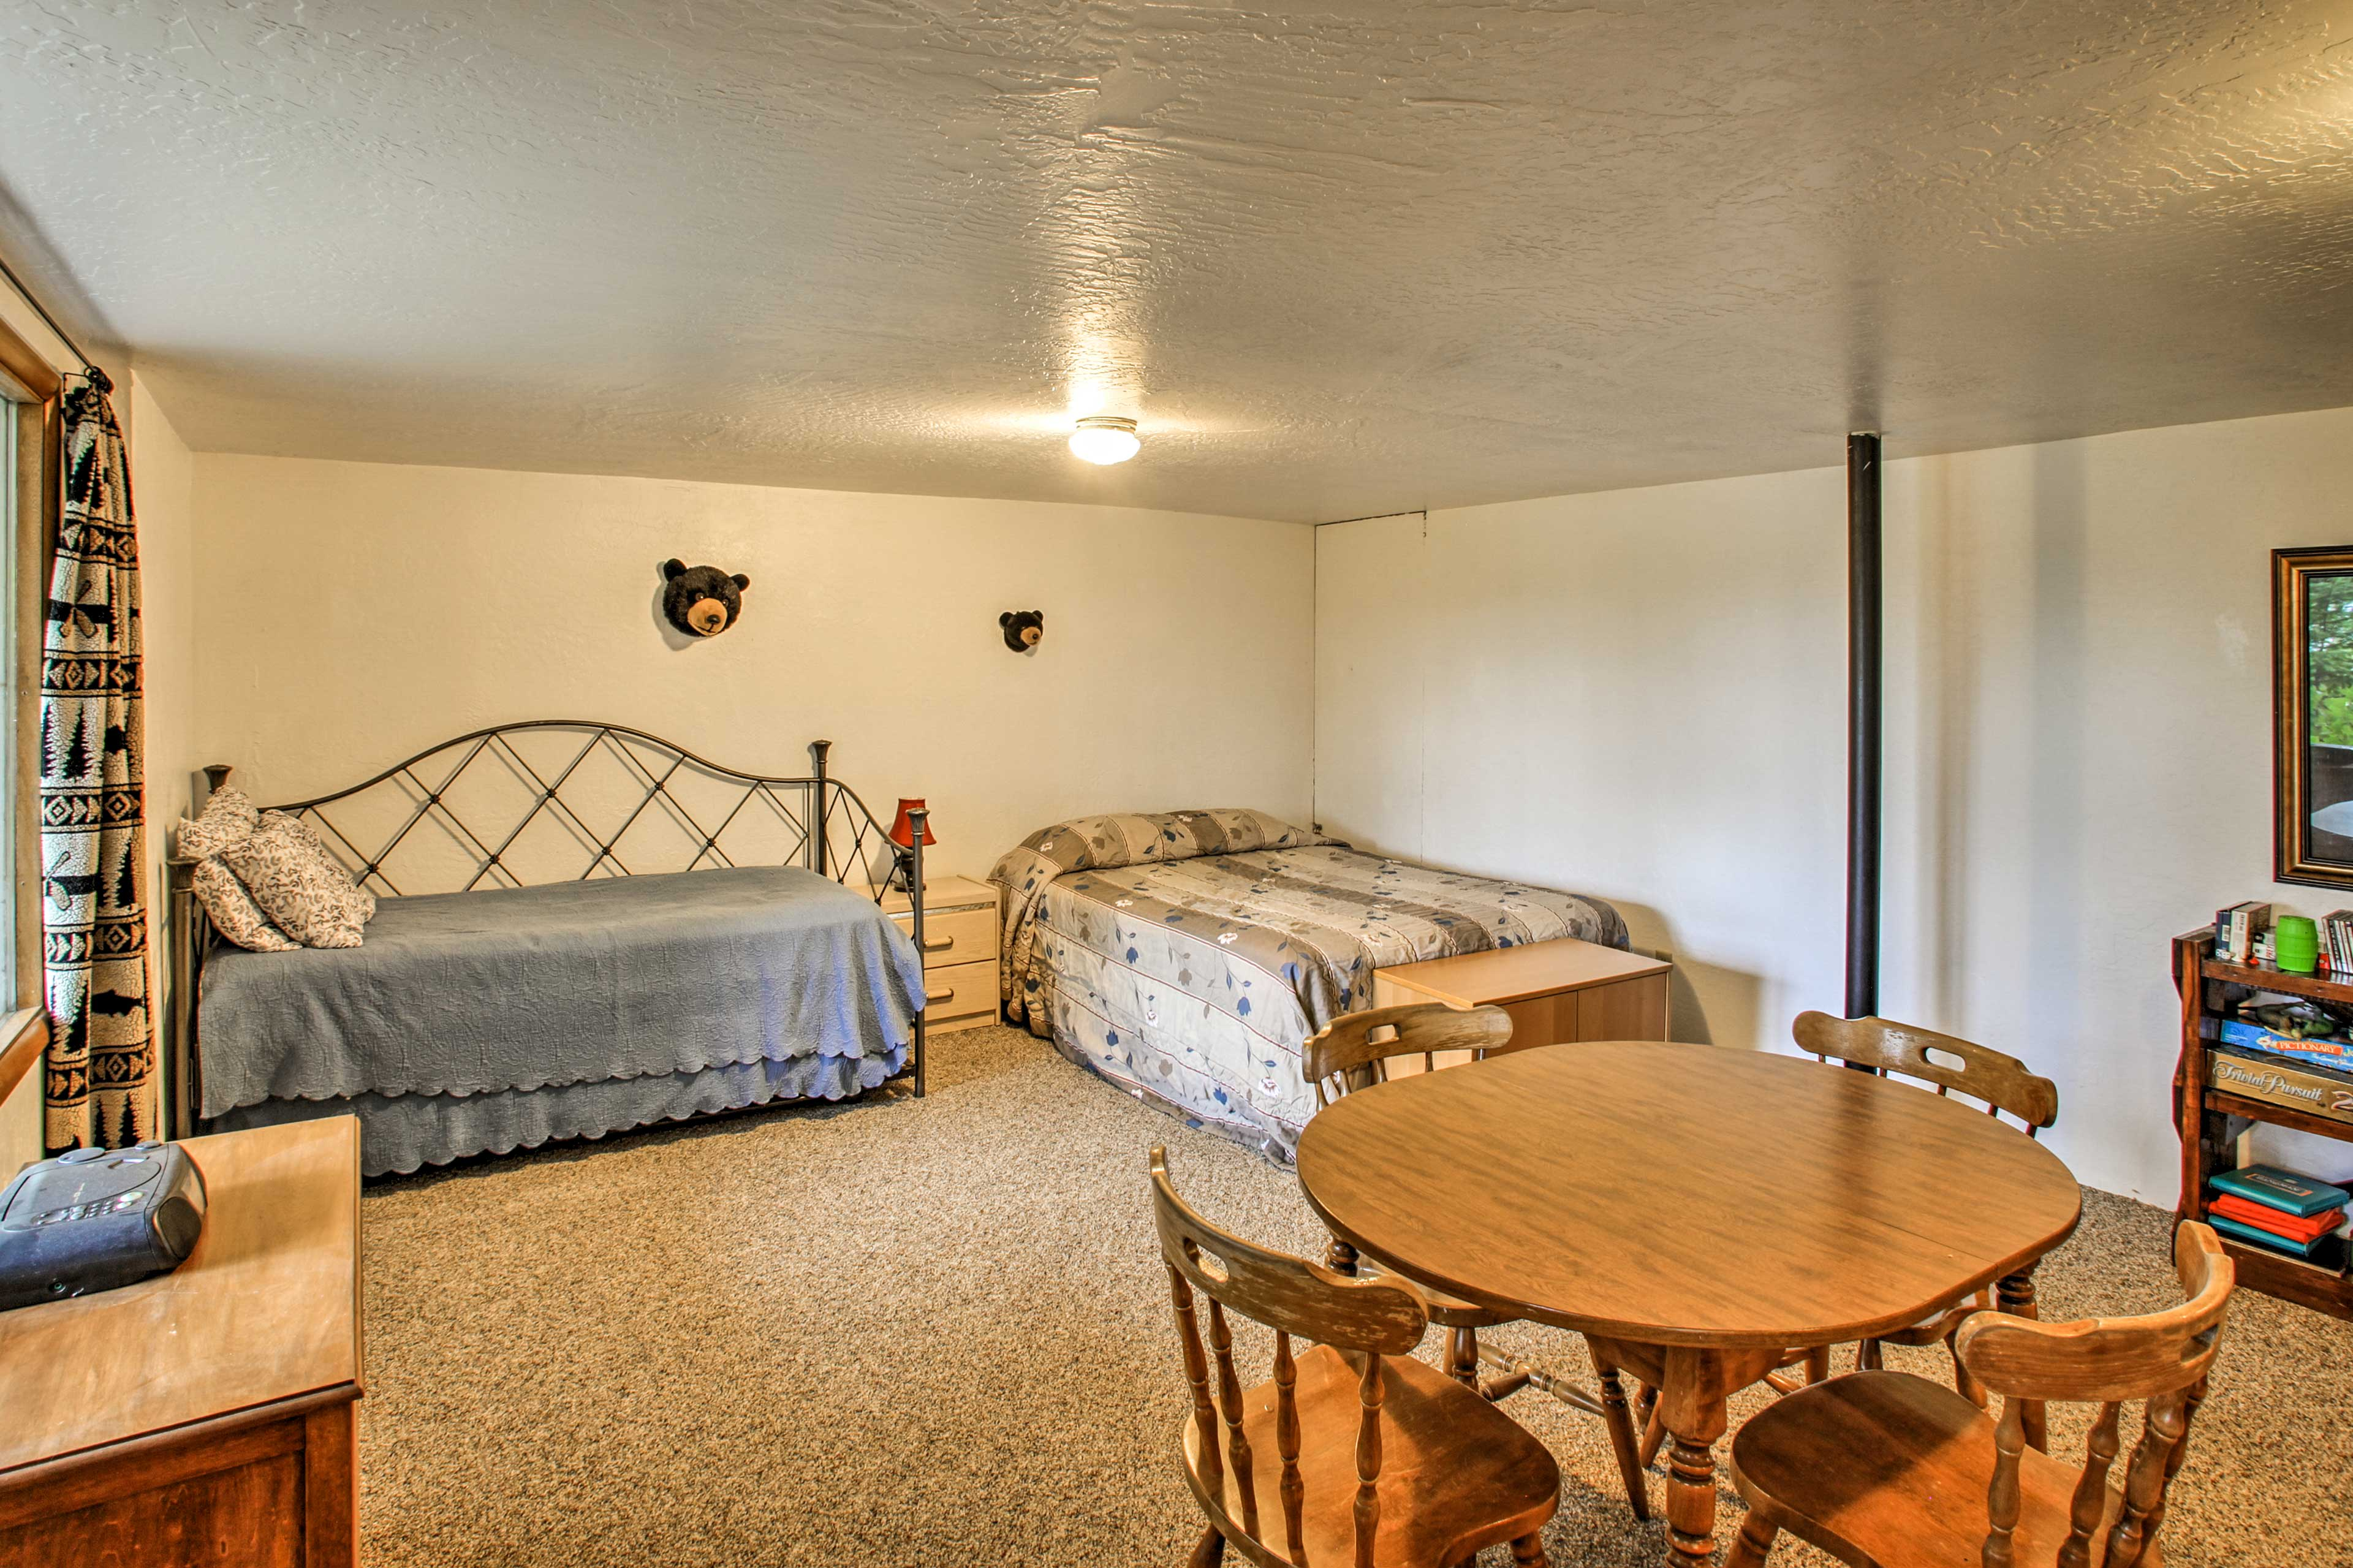 The third bedroom has a queen bed as well as a twin bed with a twin-sized bed.